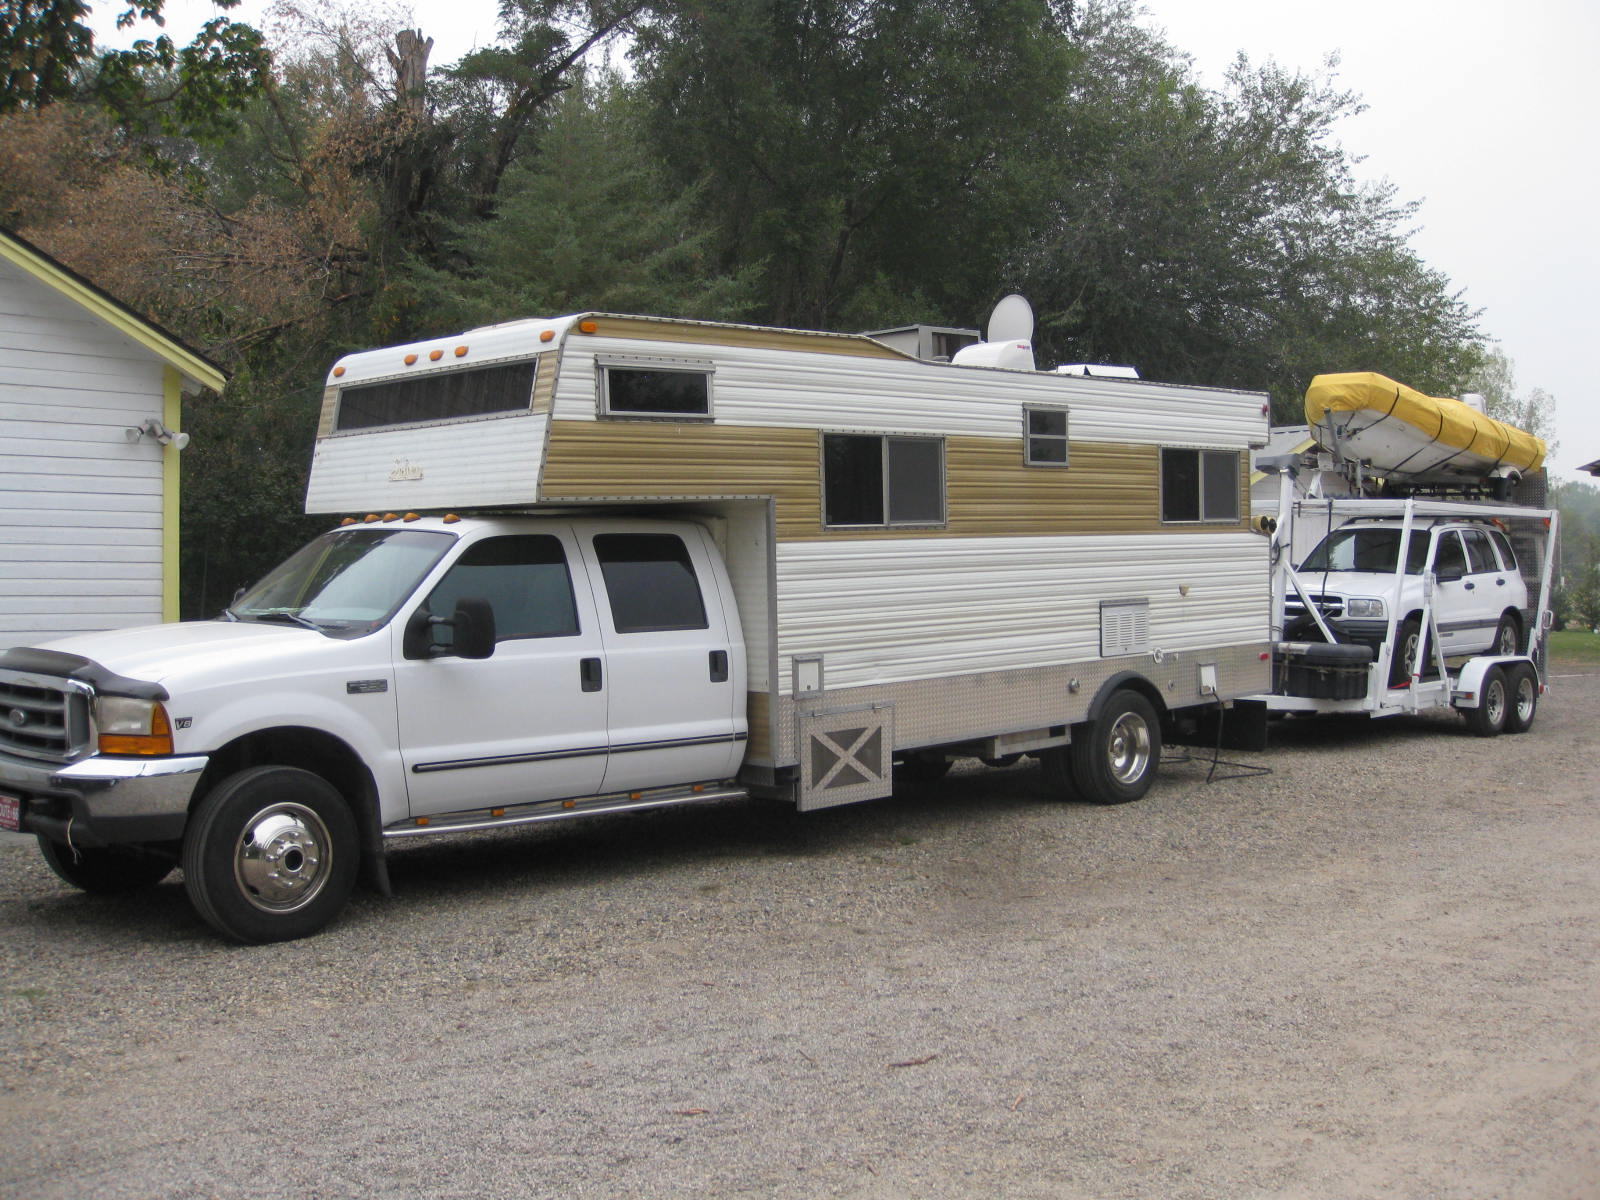 30 4x4 Diesel Class C Motorhome Expedition Portal